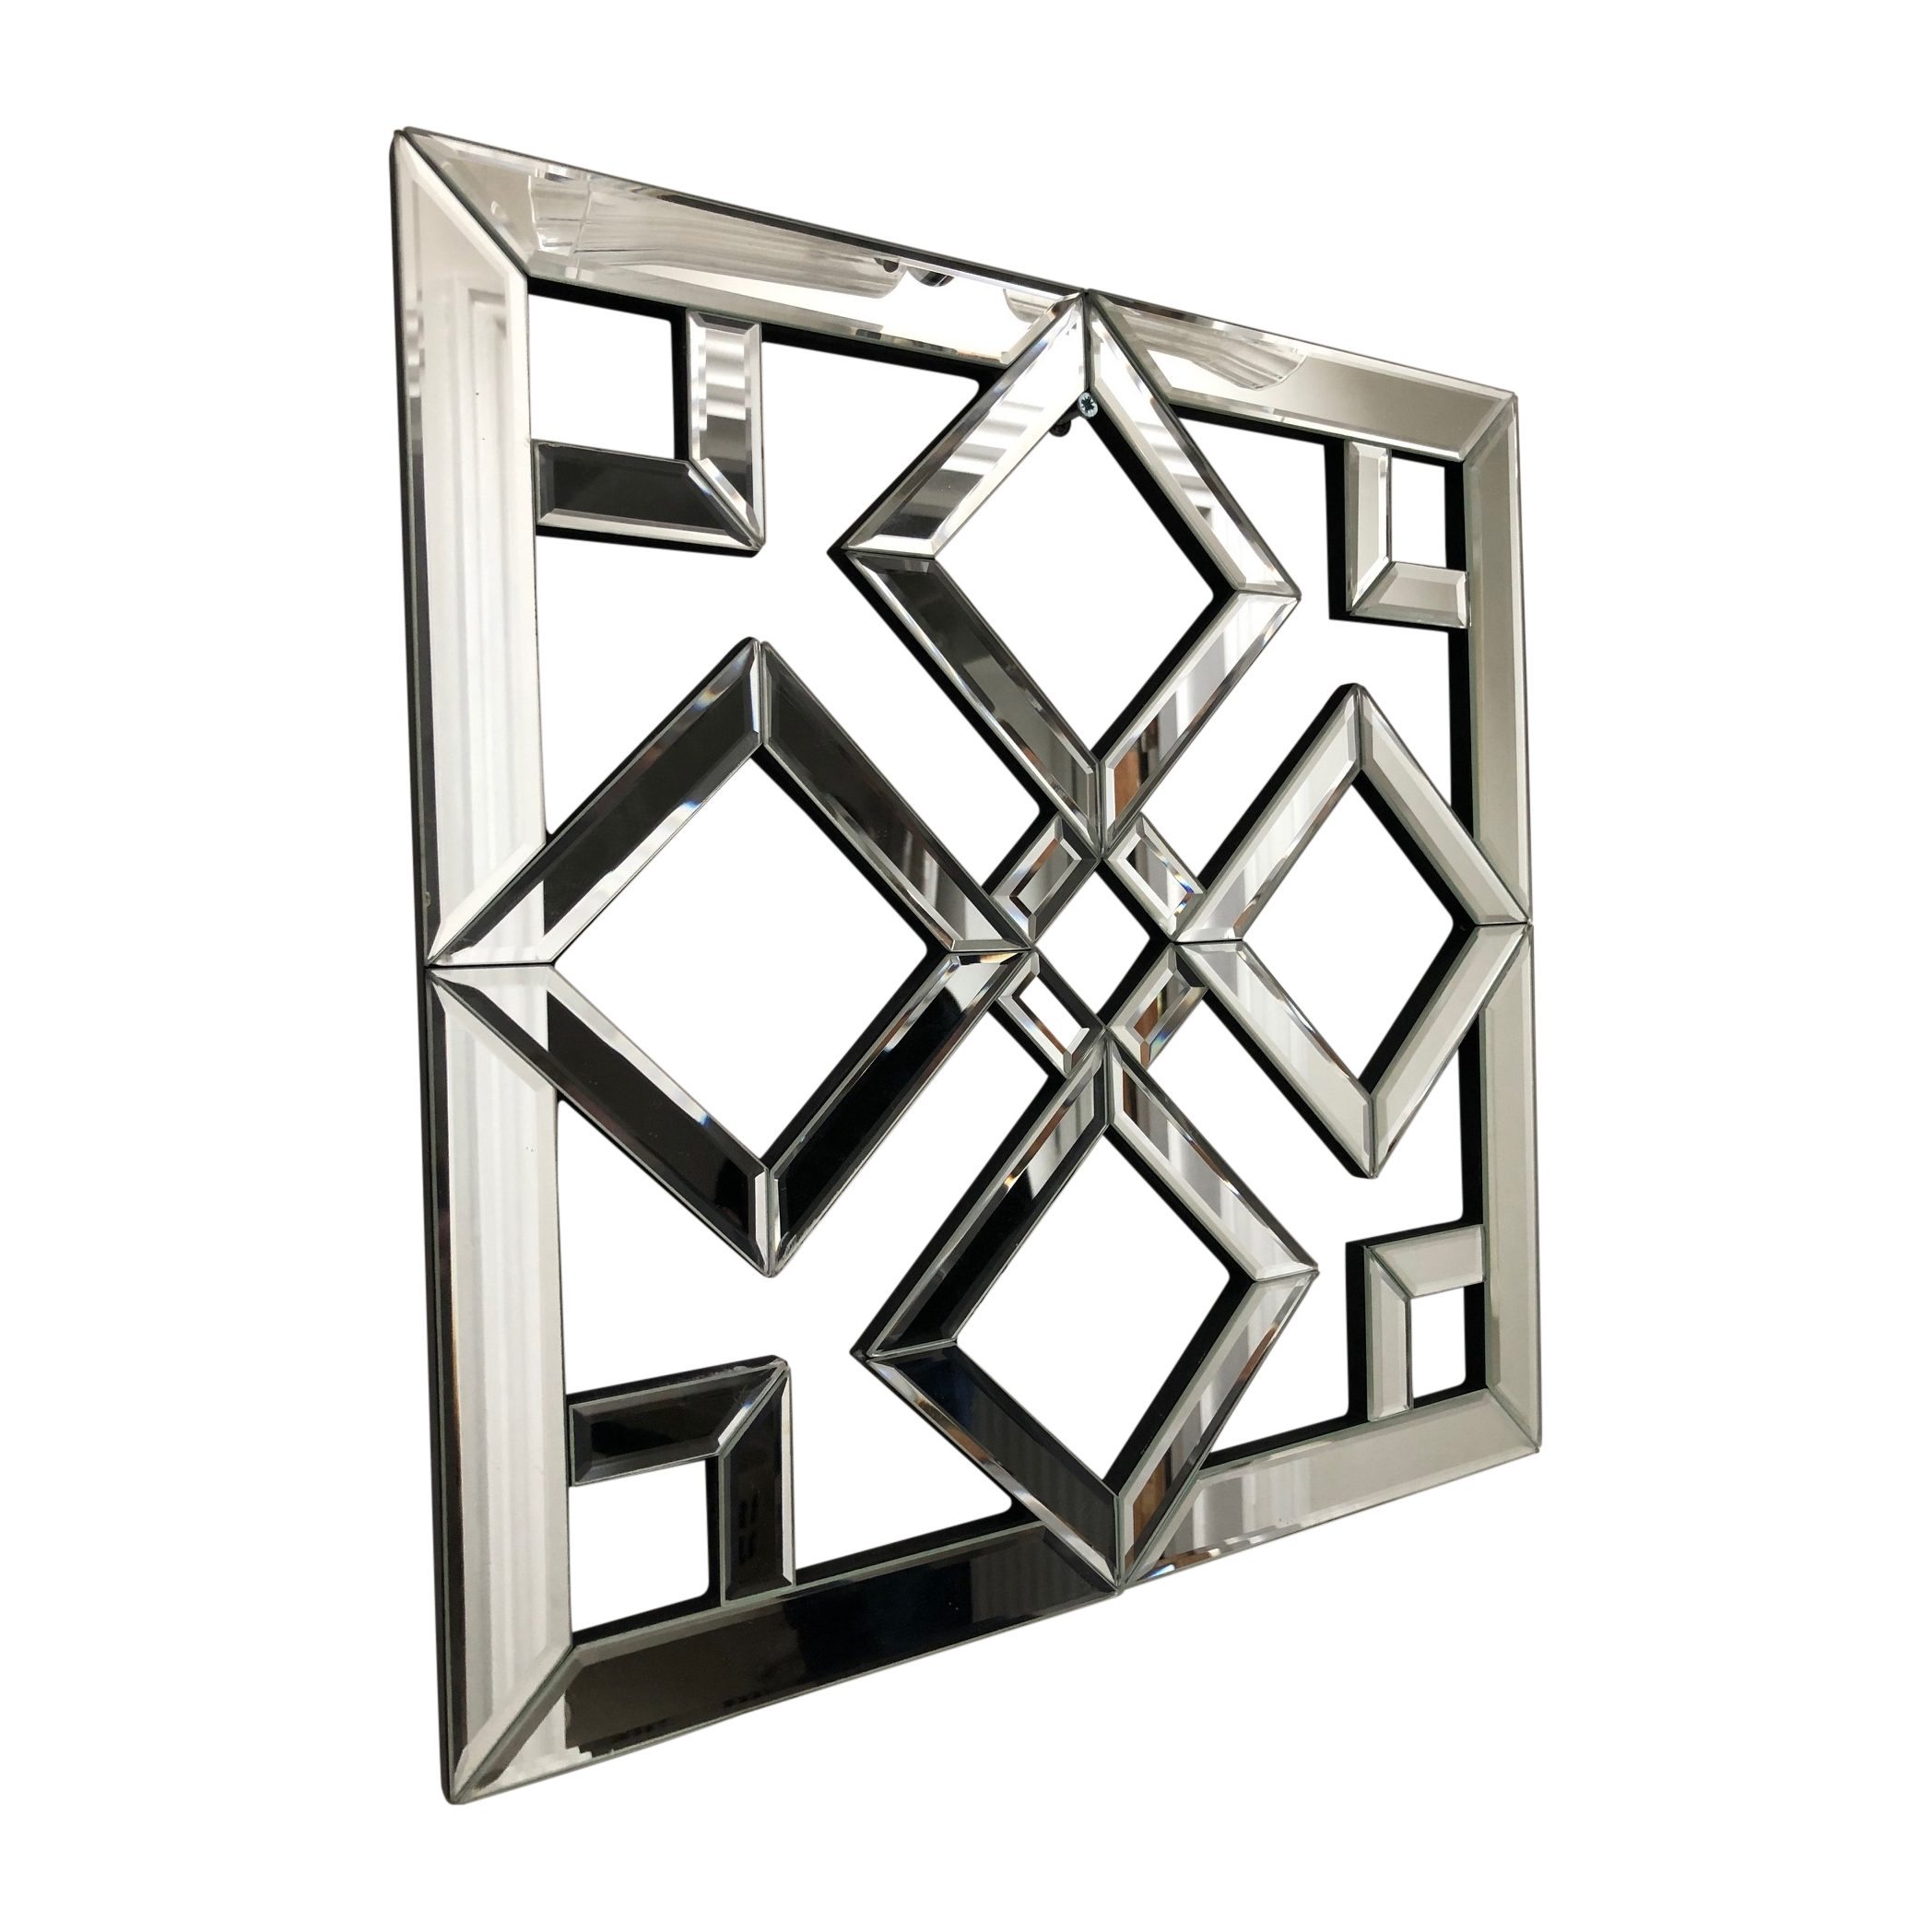 Diamond Geo Mirrored Wall Art Mirror Geometric Glass Bevelled Art Decor 40x40cm Ebay